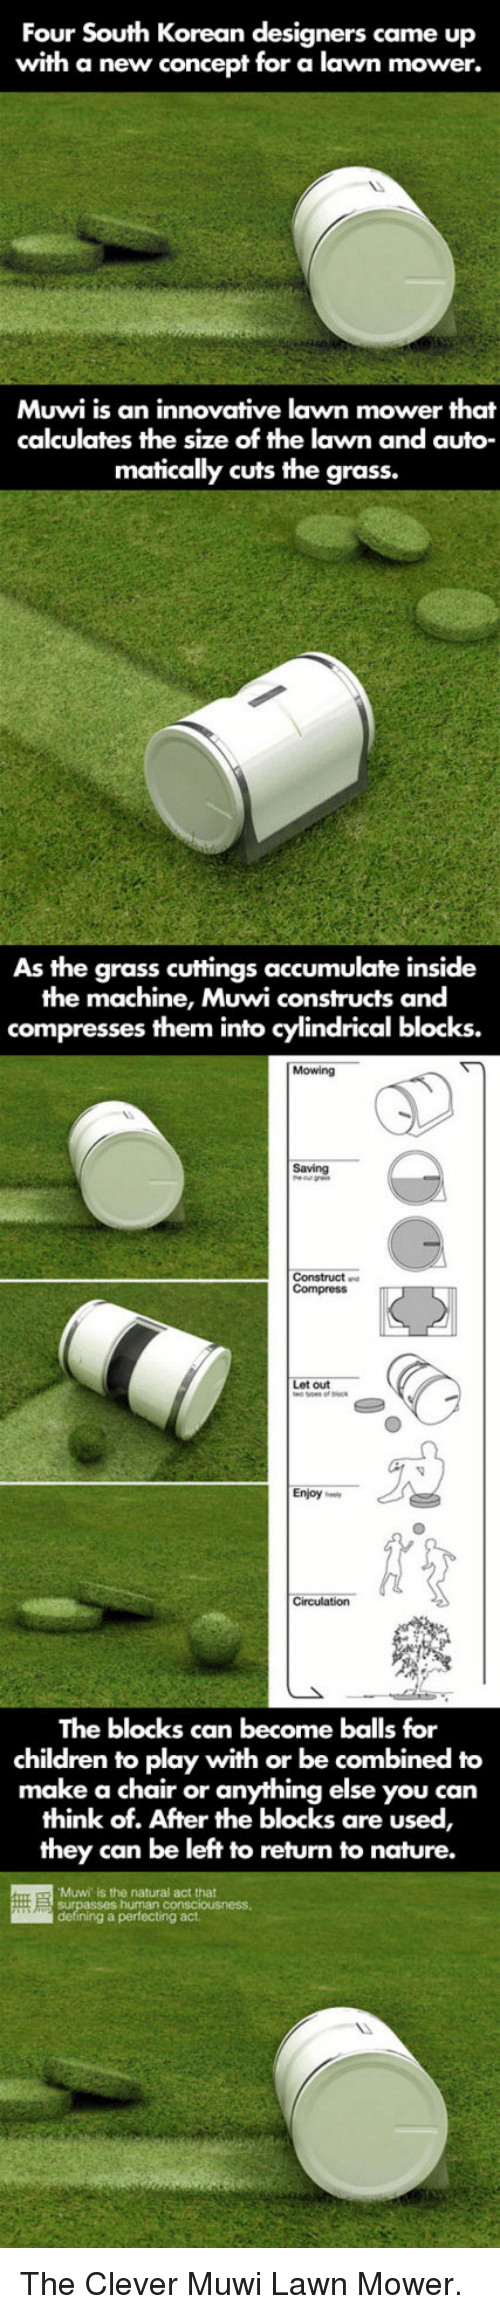 lawn mower: Four South Korean designers came up  with a new concept for a lawn mower.  Muwi is an innovative lawn mower that  calculates the size of the lawn and auto  matically cuts the grass.  As the grass cuttings accumulate inside  the machine, Muwi constructs and  compresses them into cylindrical blocks.  Mowing  Saving  out  Enjoy ee  The blocks can become balls for  children to play with or be combined to  make a chair or anything else you can  think of. After the blocks are used,  they can be left to return to nature.  Muwi is the natural act that  g a perfecting act <p>The Clever Muwi Lawn Mower.</p>